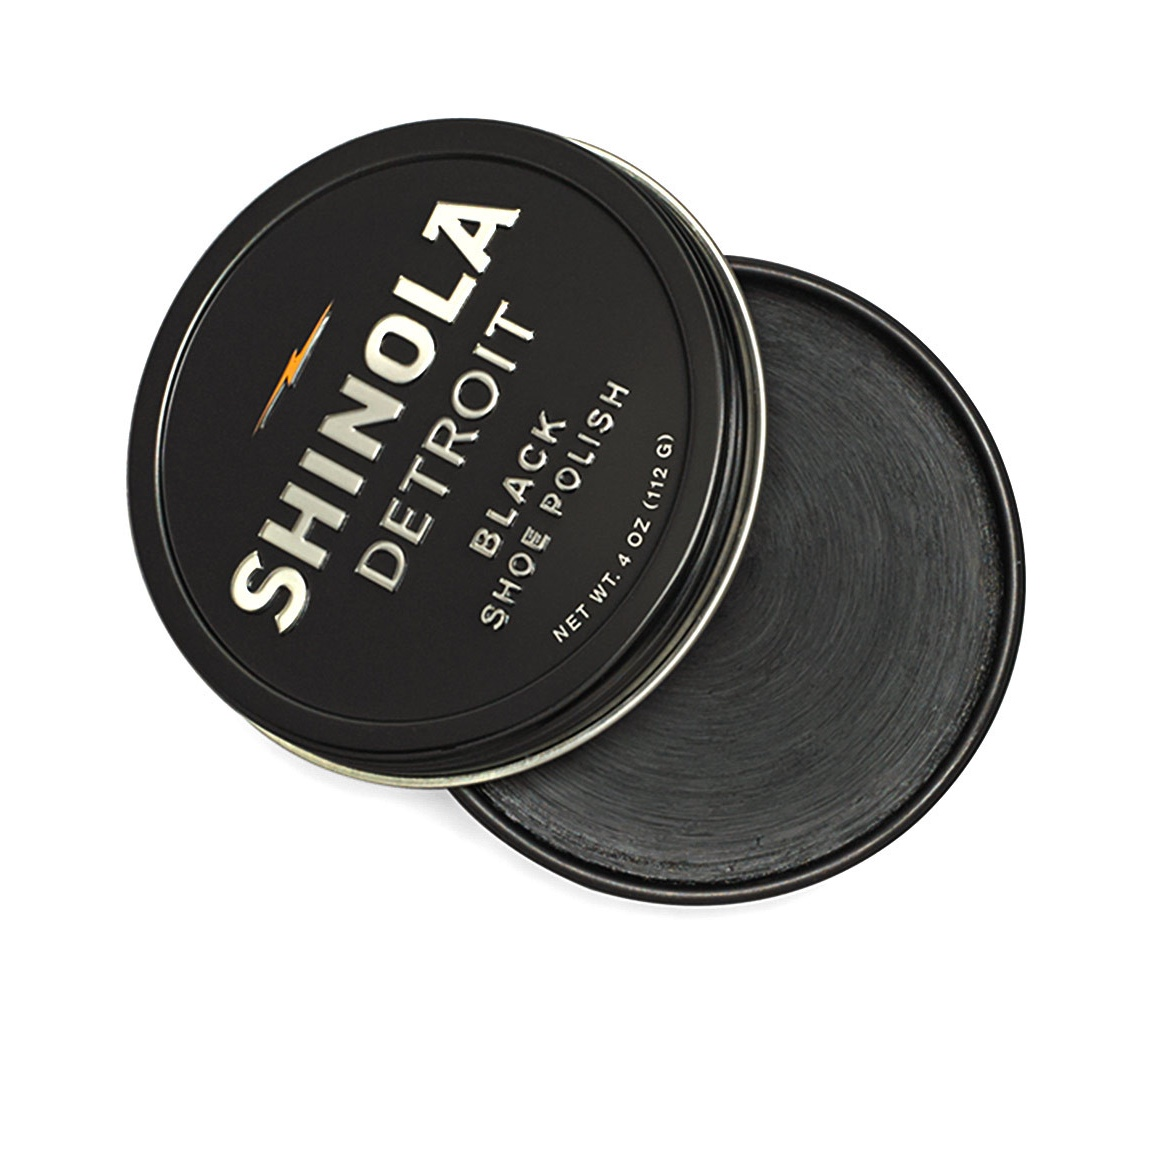 Shinola shoe polish. Produced in small batches in Chicago by C.A. Zoes Manufacturing. Image © Shinola 2016.